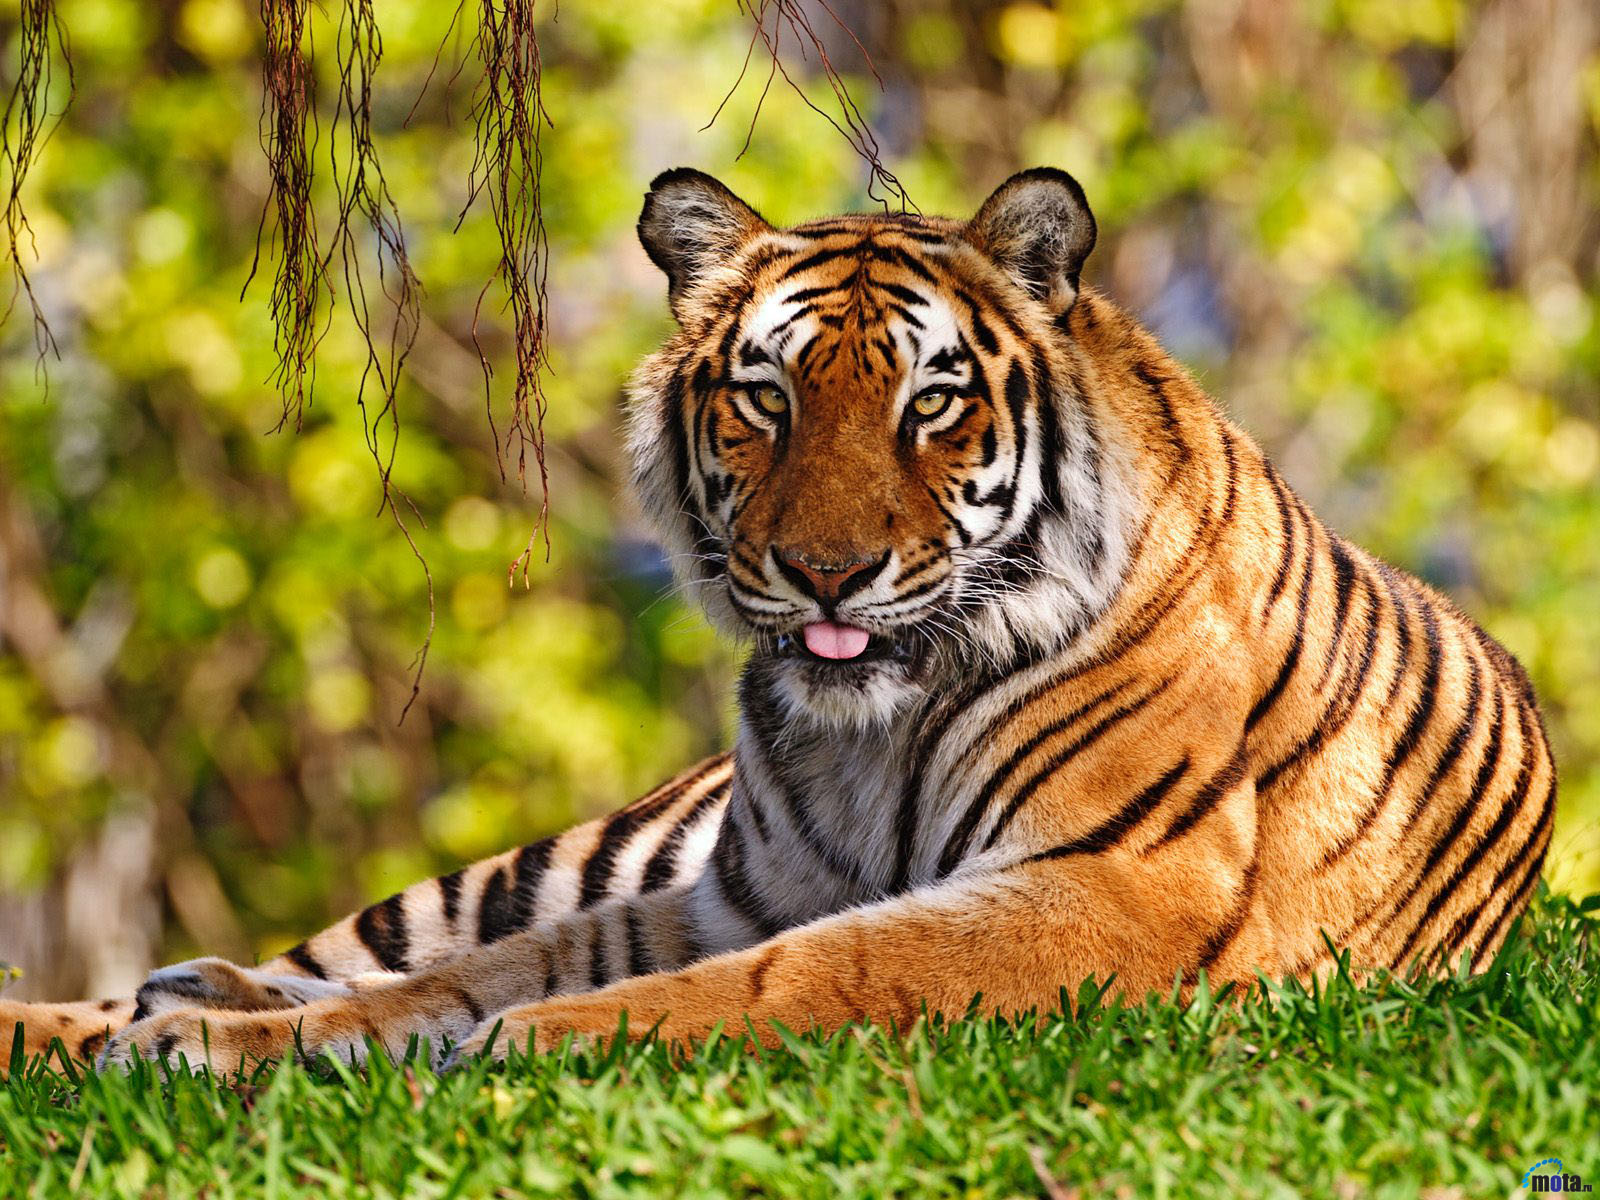 Animals Wallpapers The best Animal wallpapers You ever had seen 1600x1200